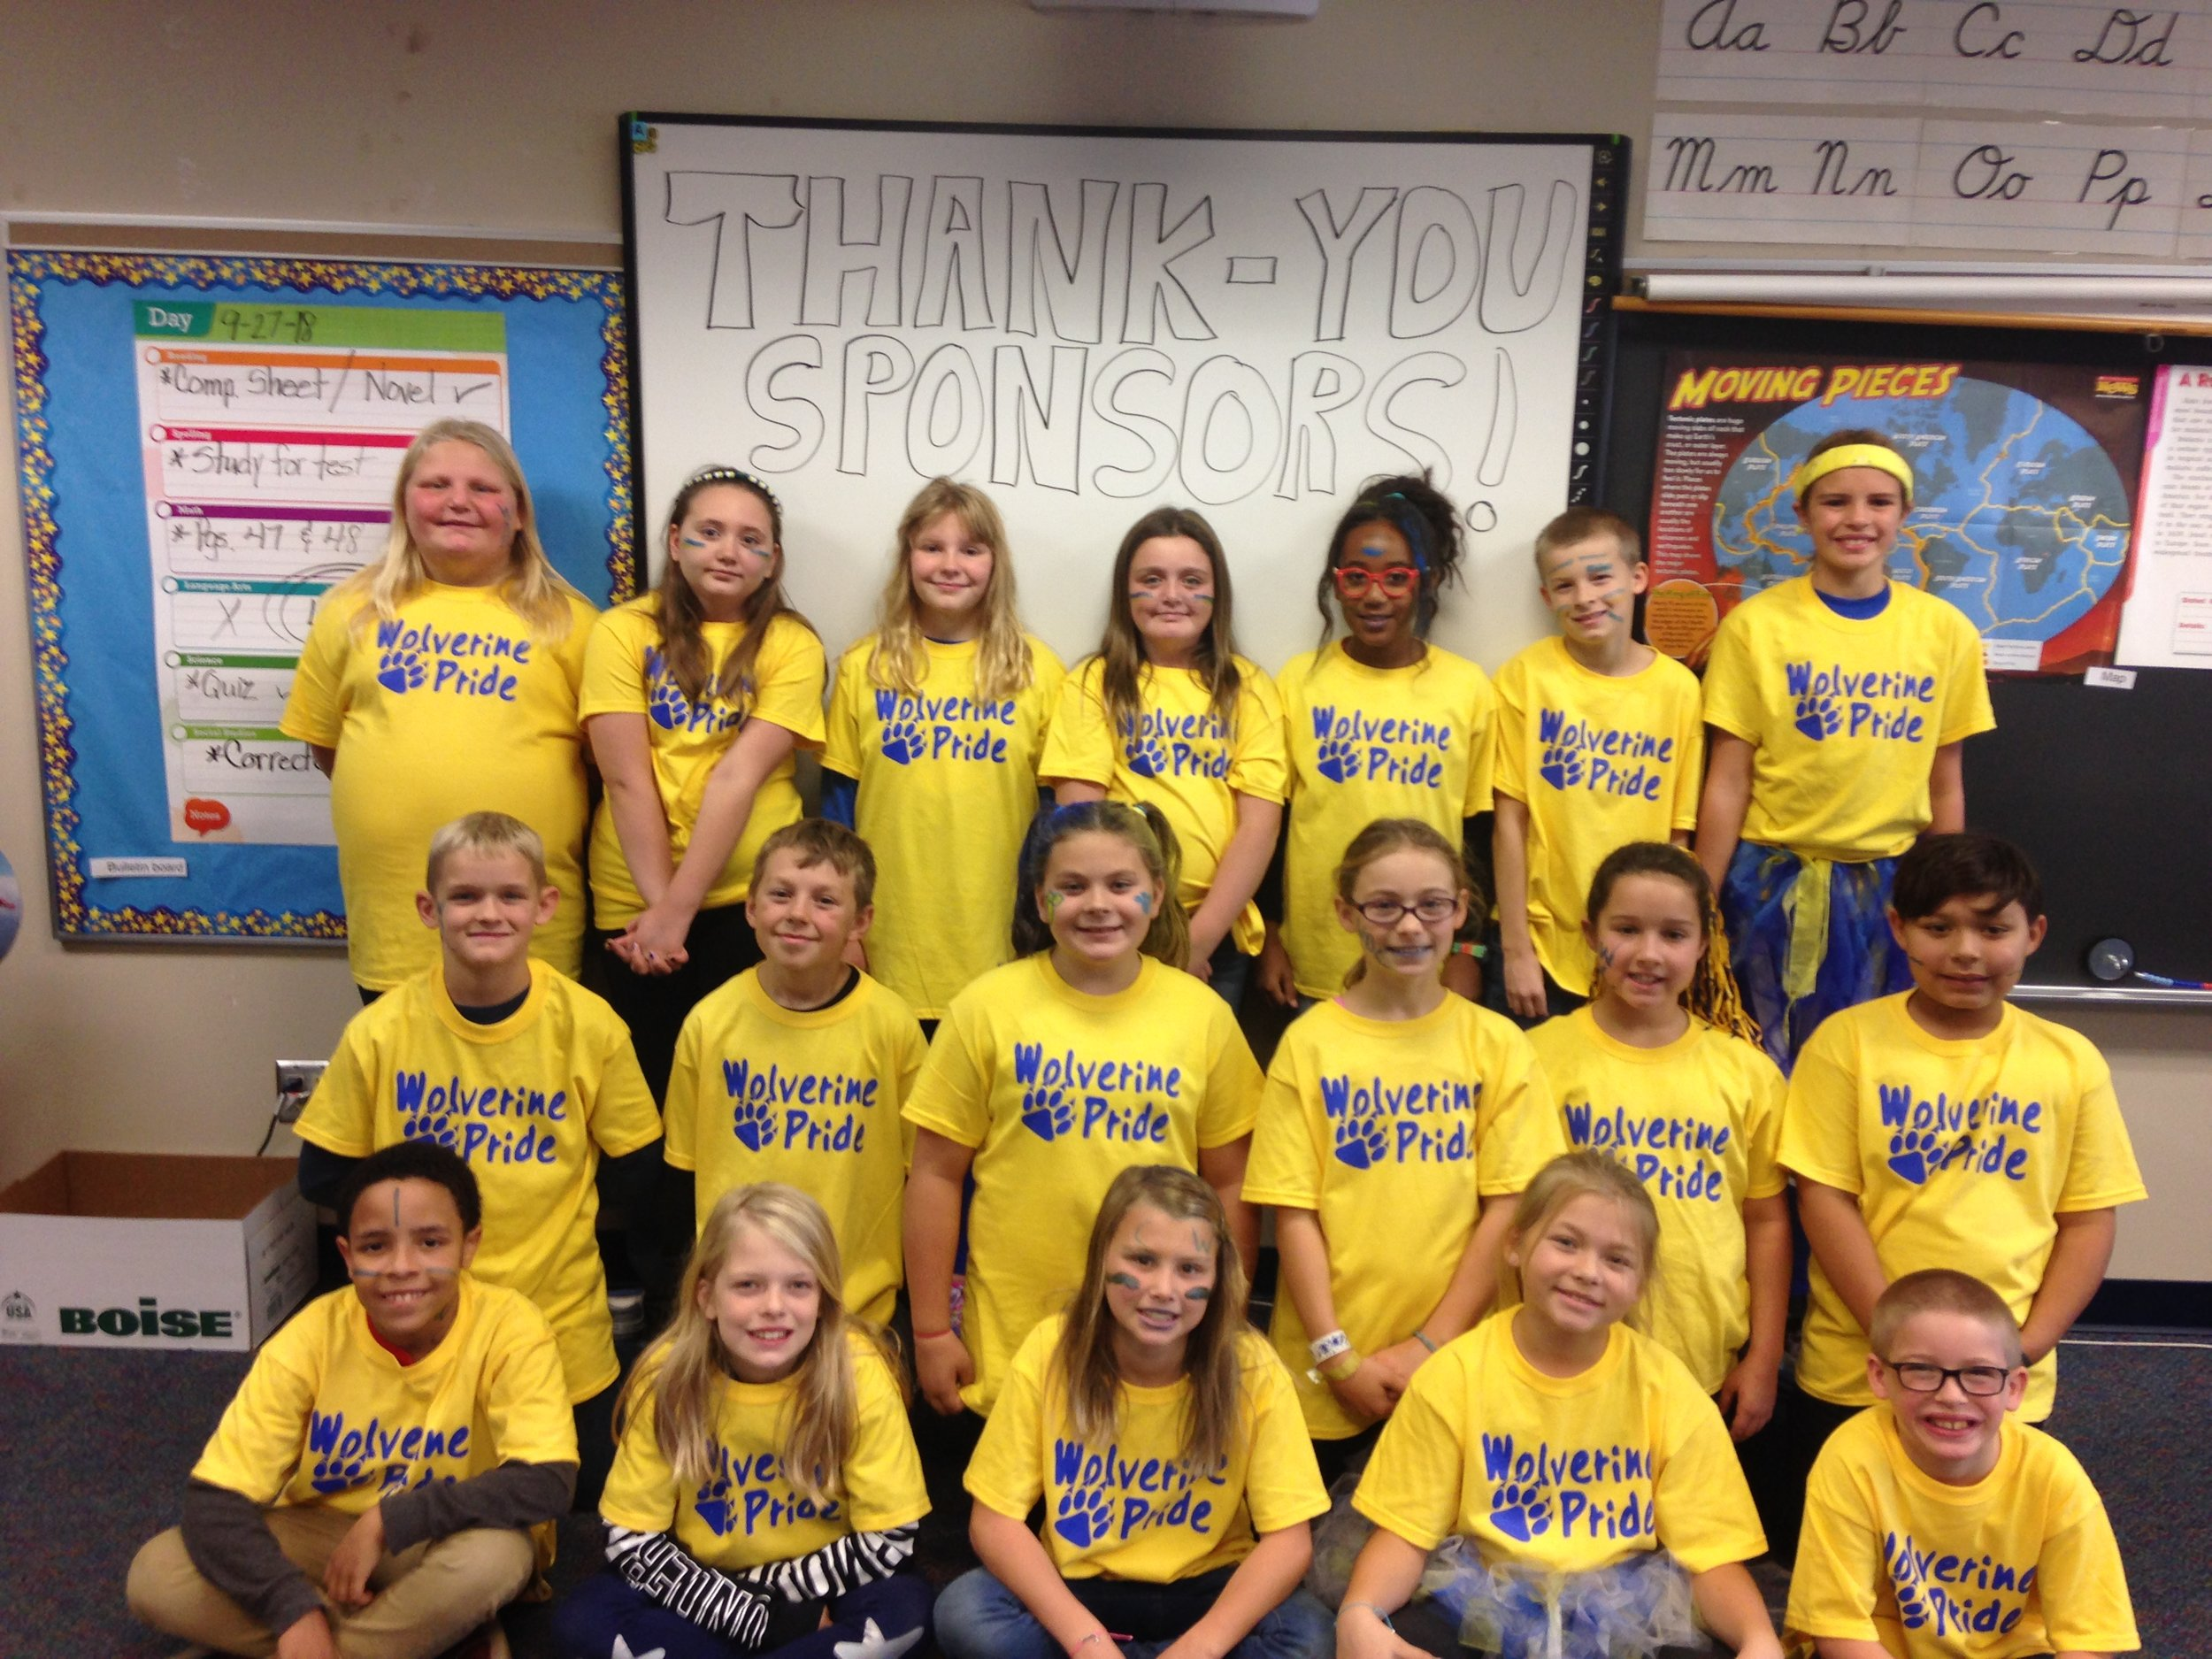 Mrs. Berg's fourth-graders looking sharp in their new Wolverine Pride T-shirts! They also posted a thank you on their erasable whiteboard.